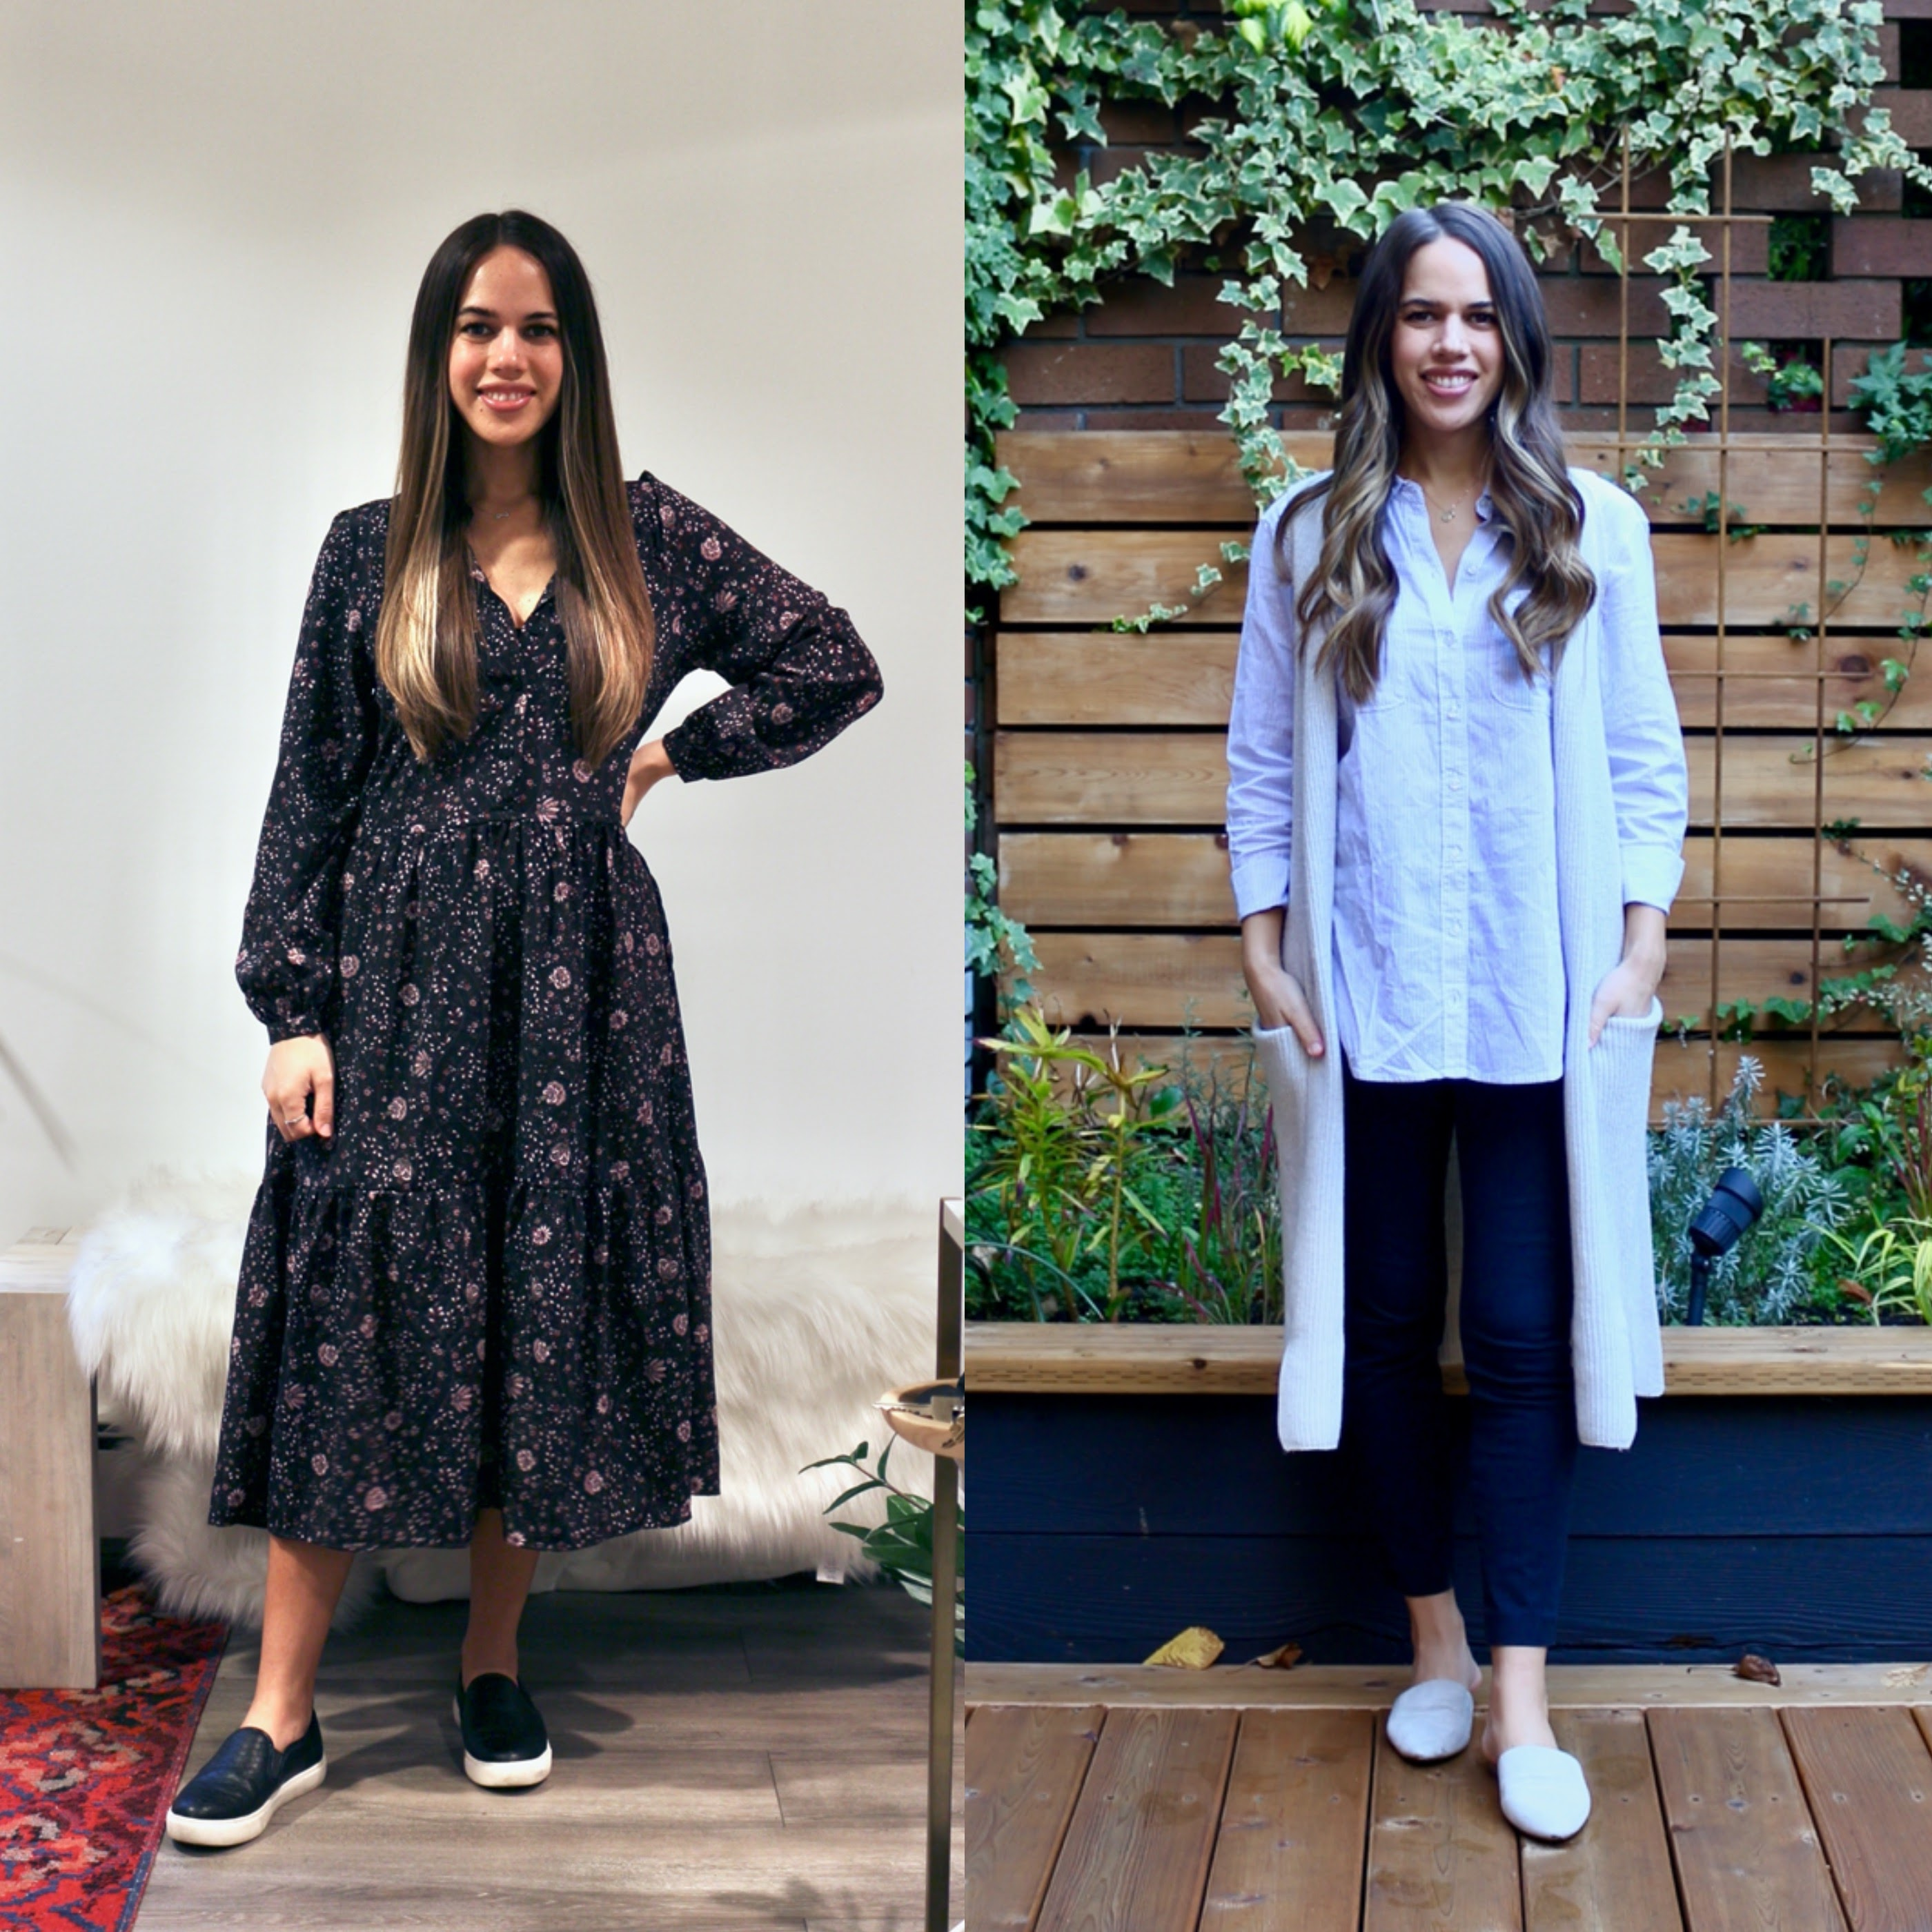 Jules in Flats - What I Wore to Work in November